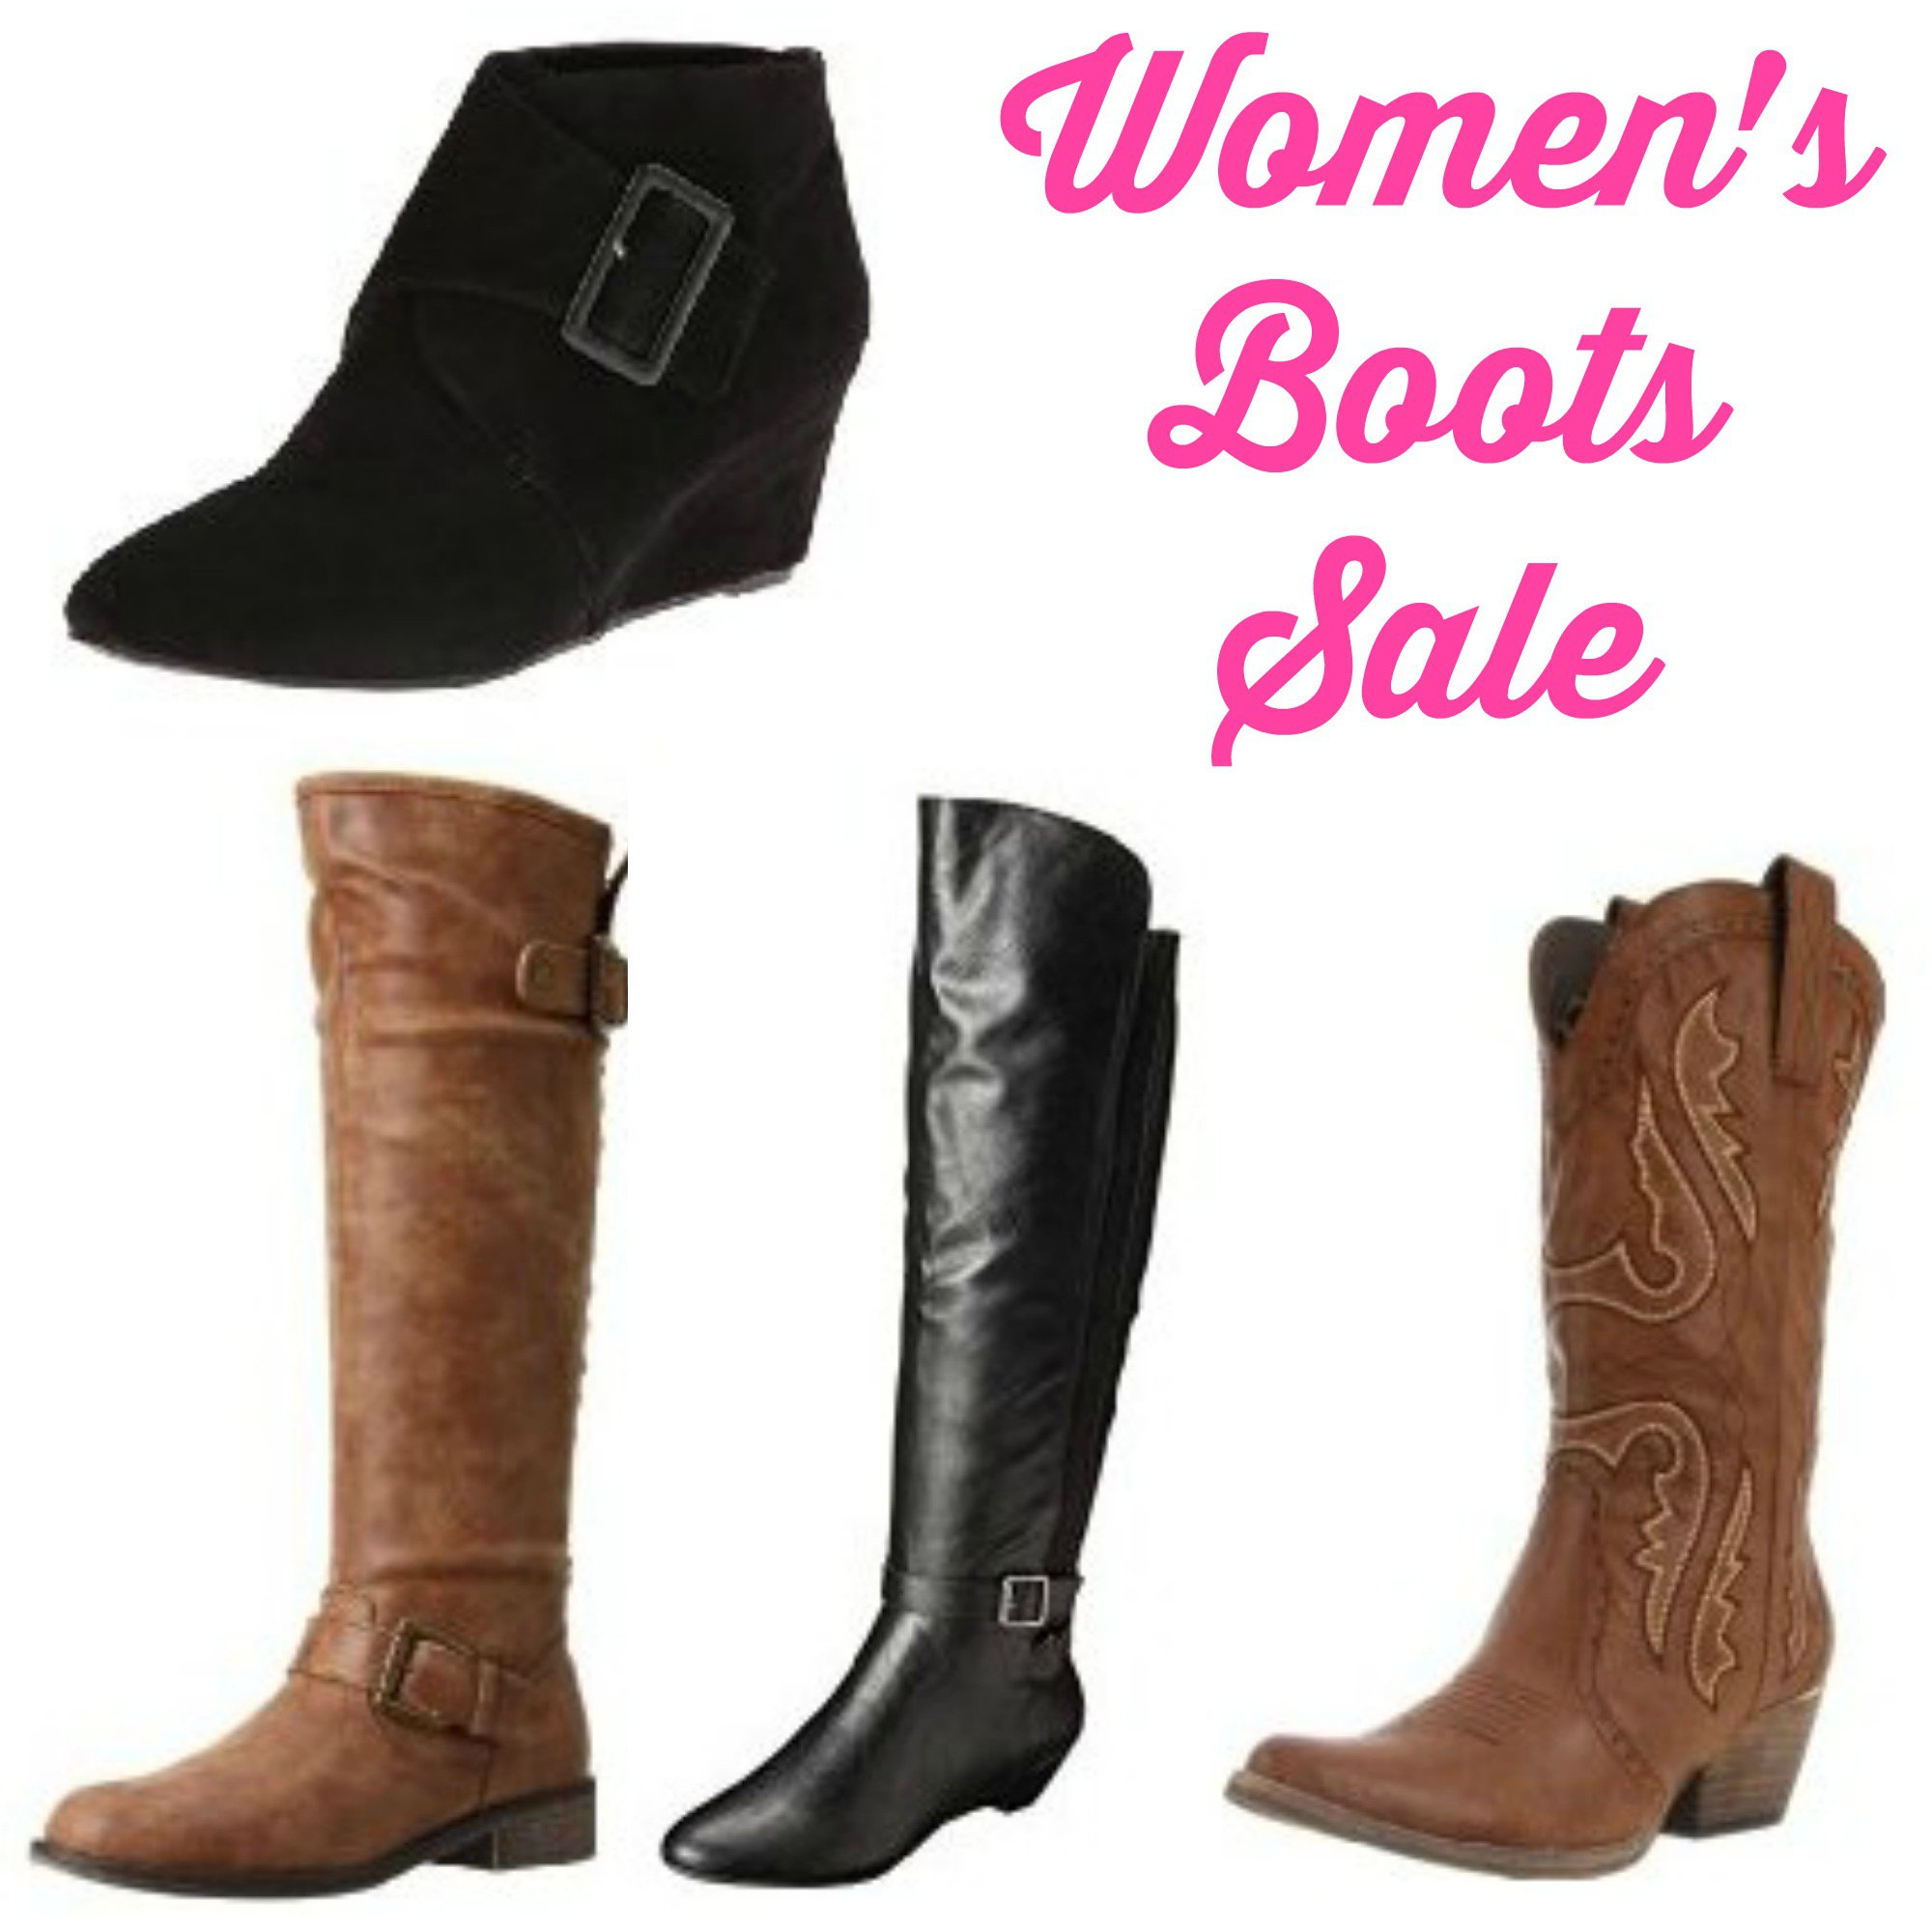 Boots Womens Sale sdmYb51V